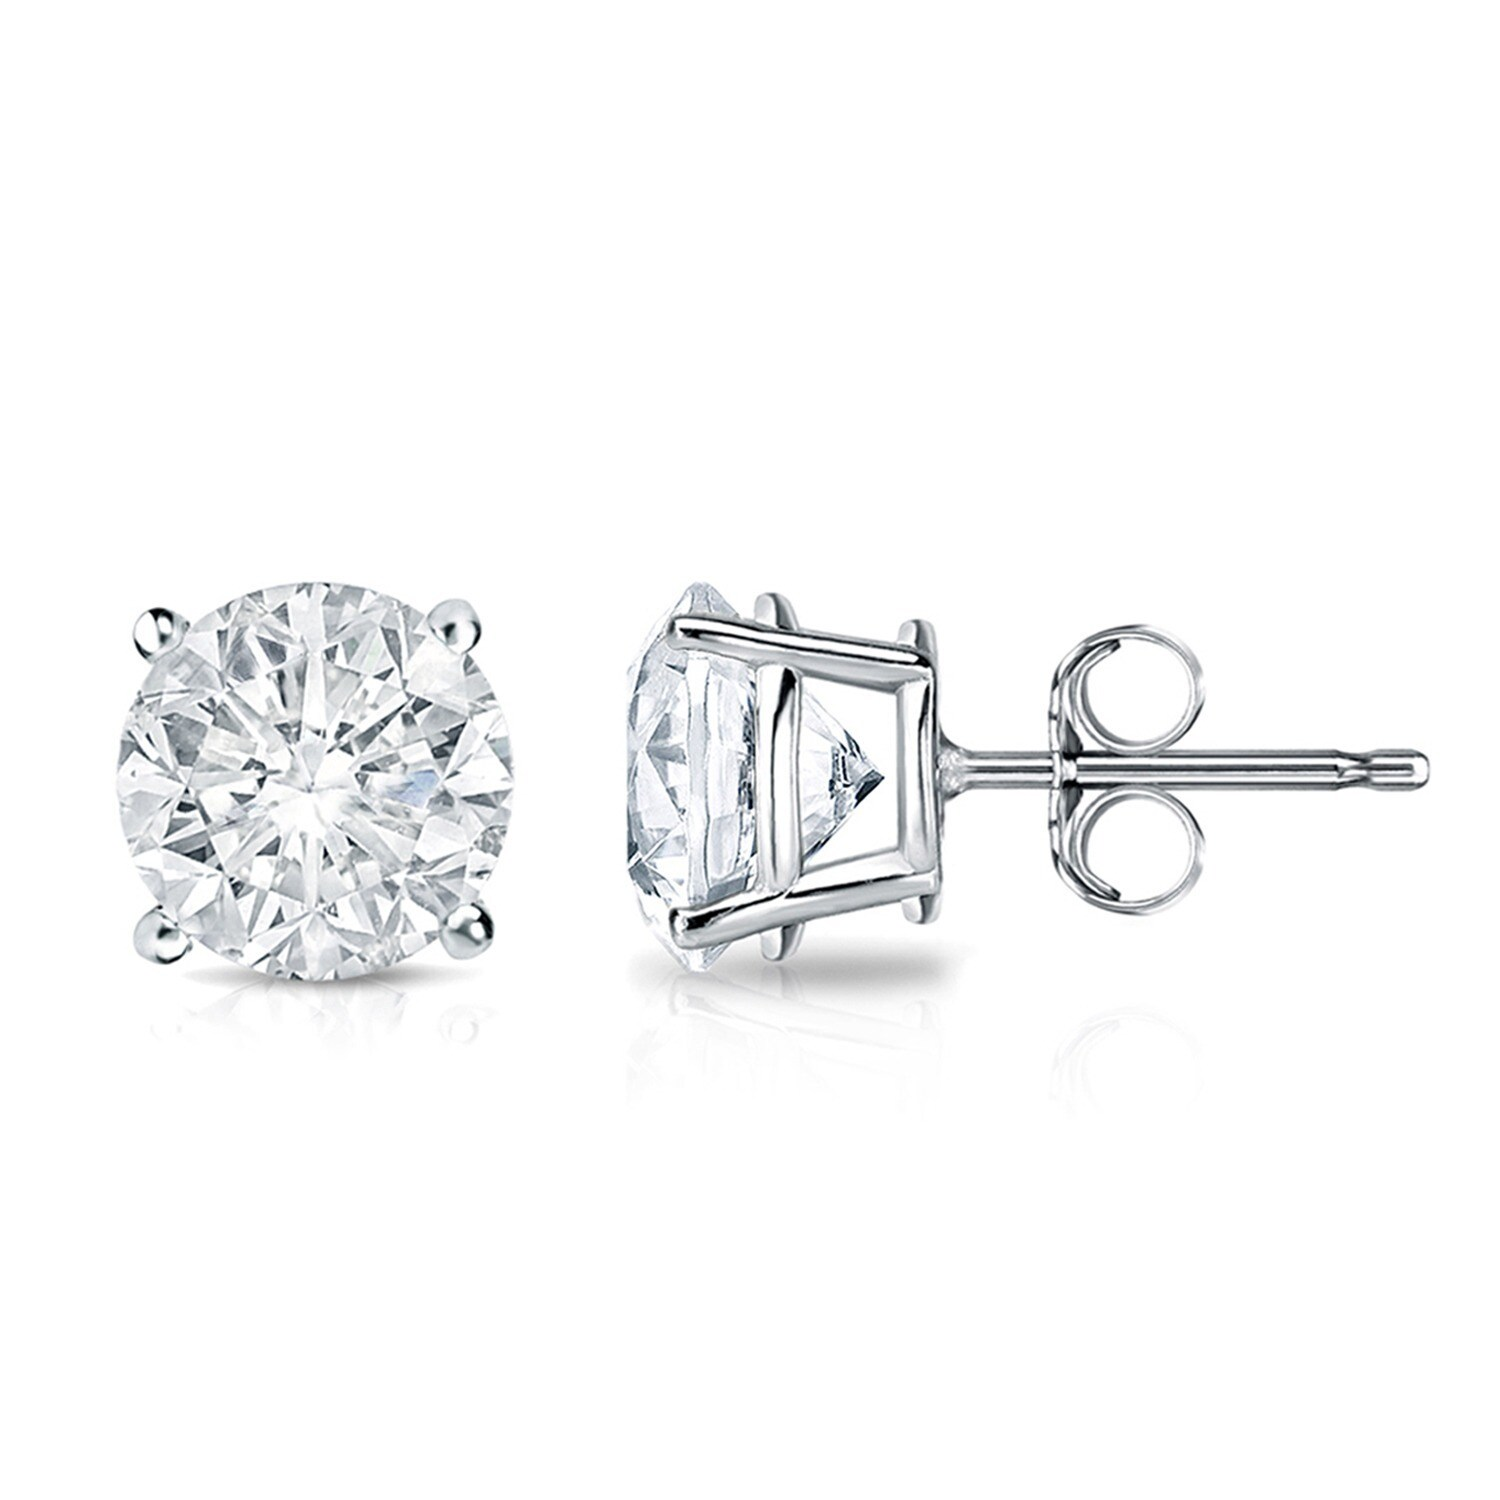 Auriya 18k Gold 1ct Tdw Clarity Enhanced Diamond Solitaire Stud Earrings On Free Shipping Today 7124278